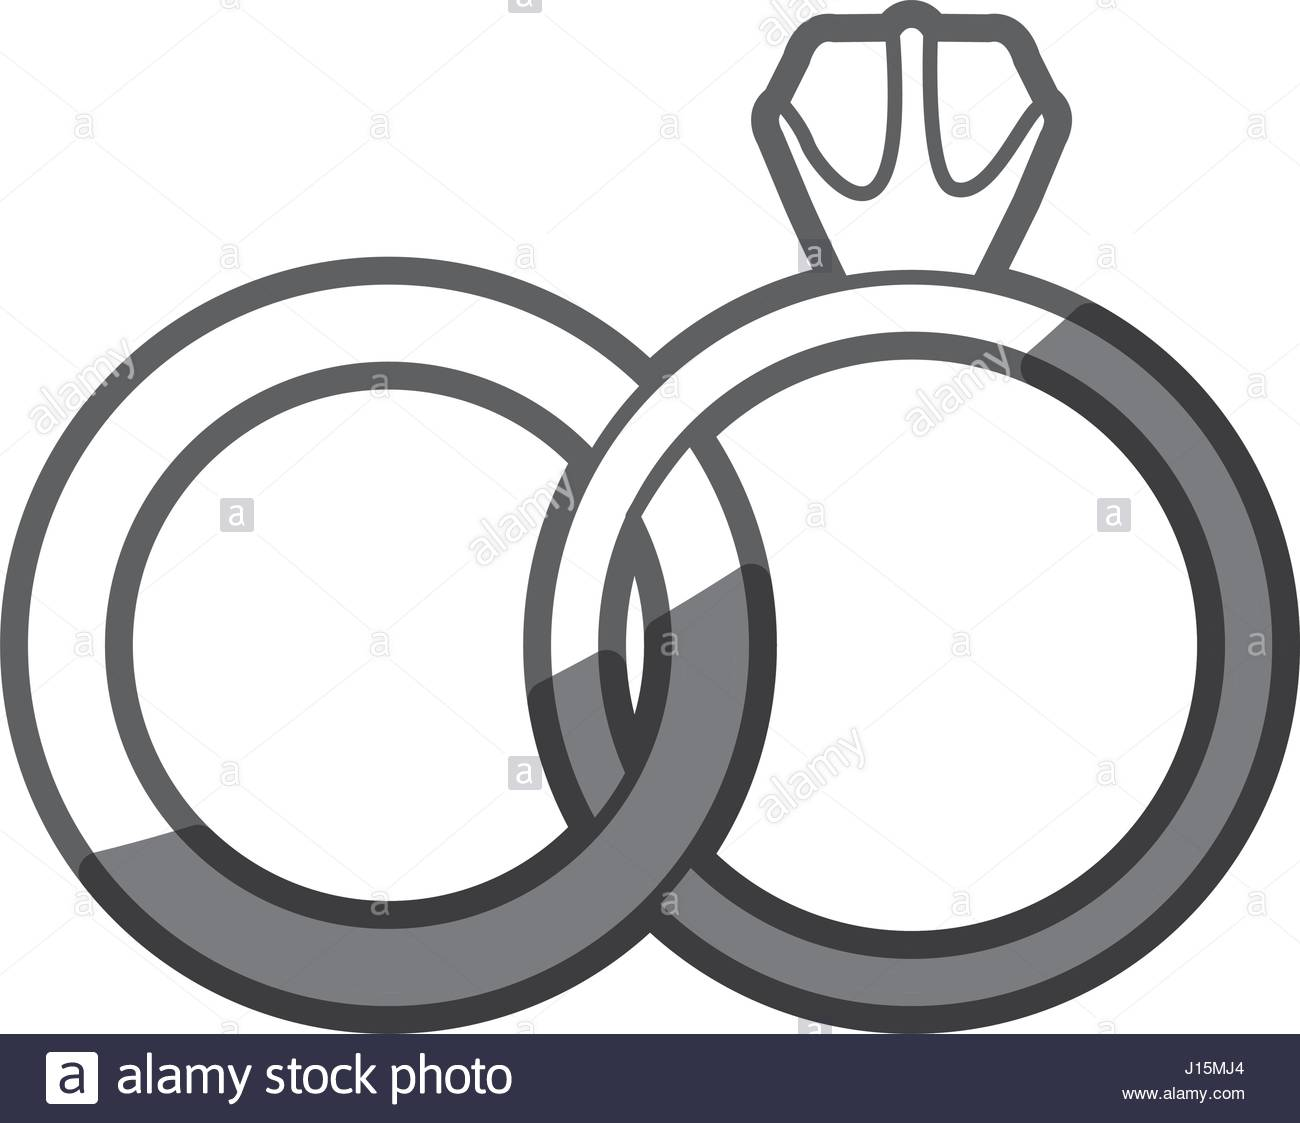 1300x1123 Grayscale Silhouette Of Wedding Rings Stock Vector Art